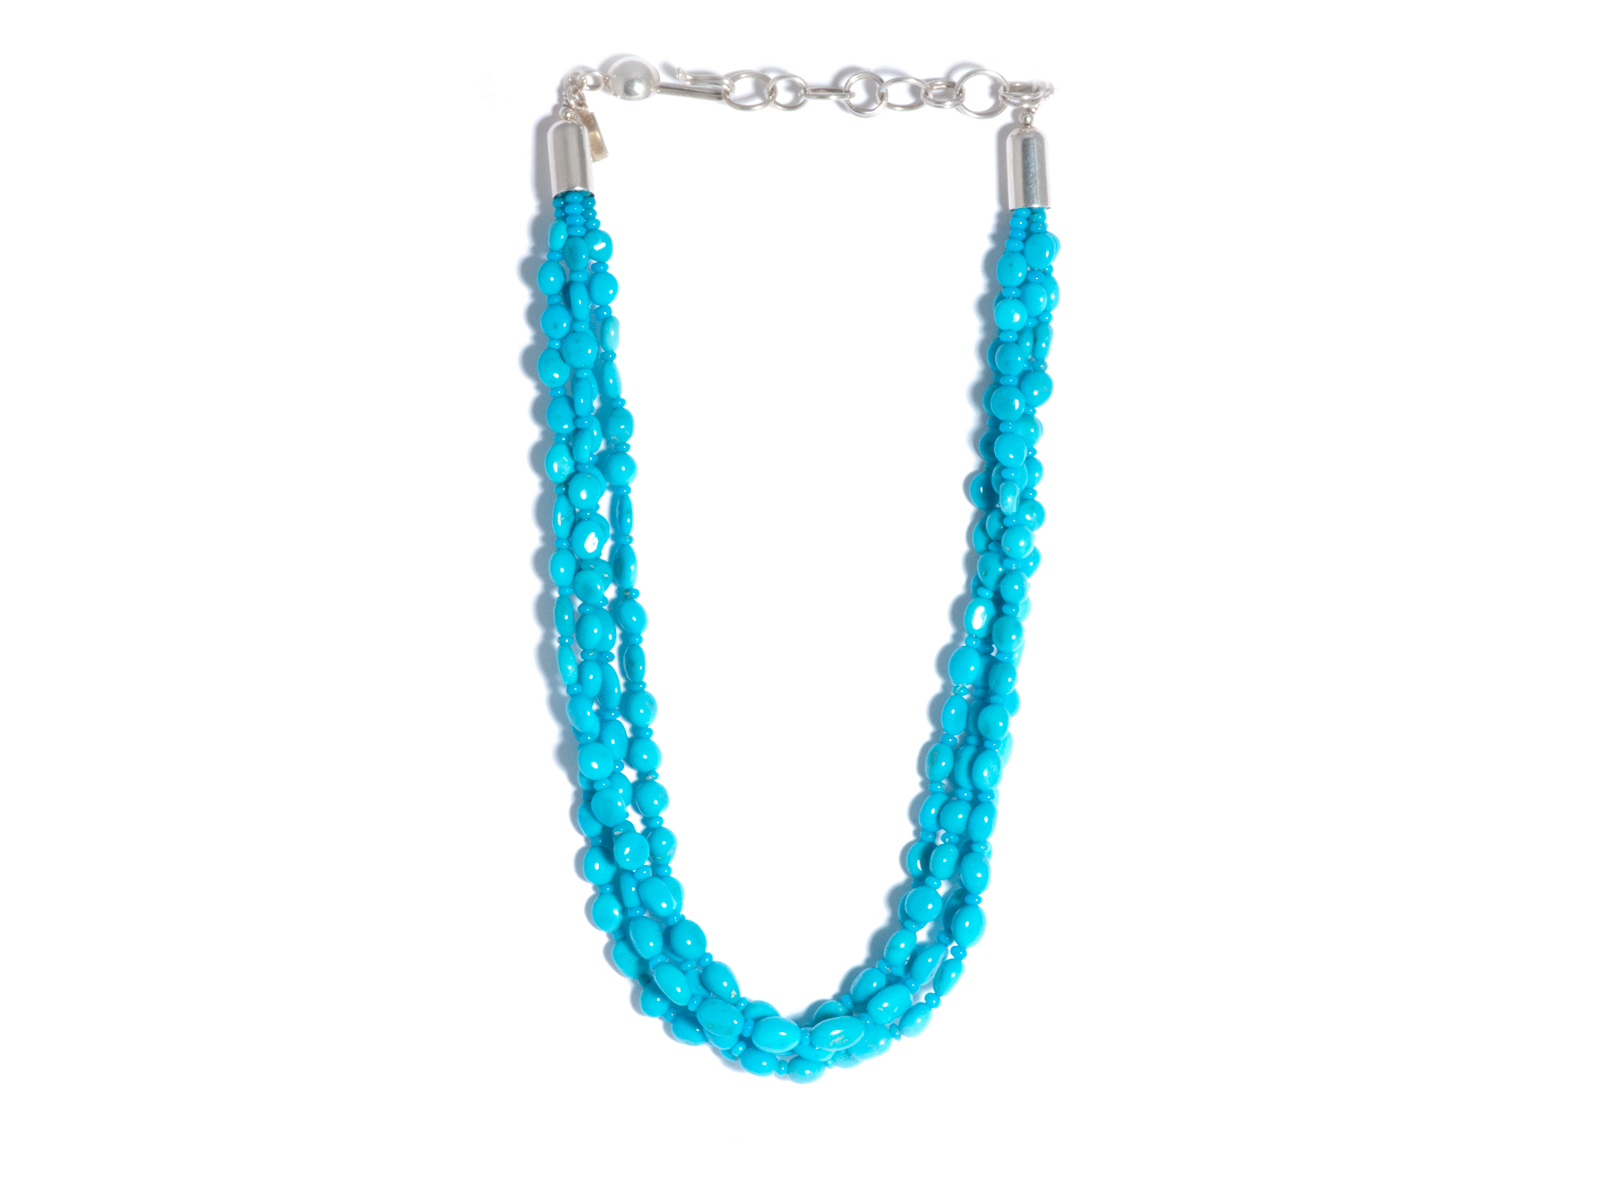 4 Strand Sleeping Beauty Turquoise Beaded Necklace